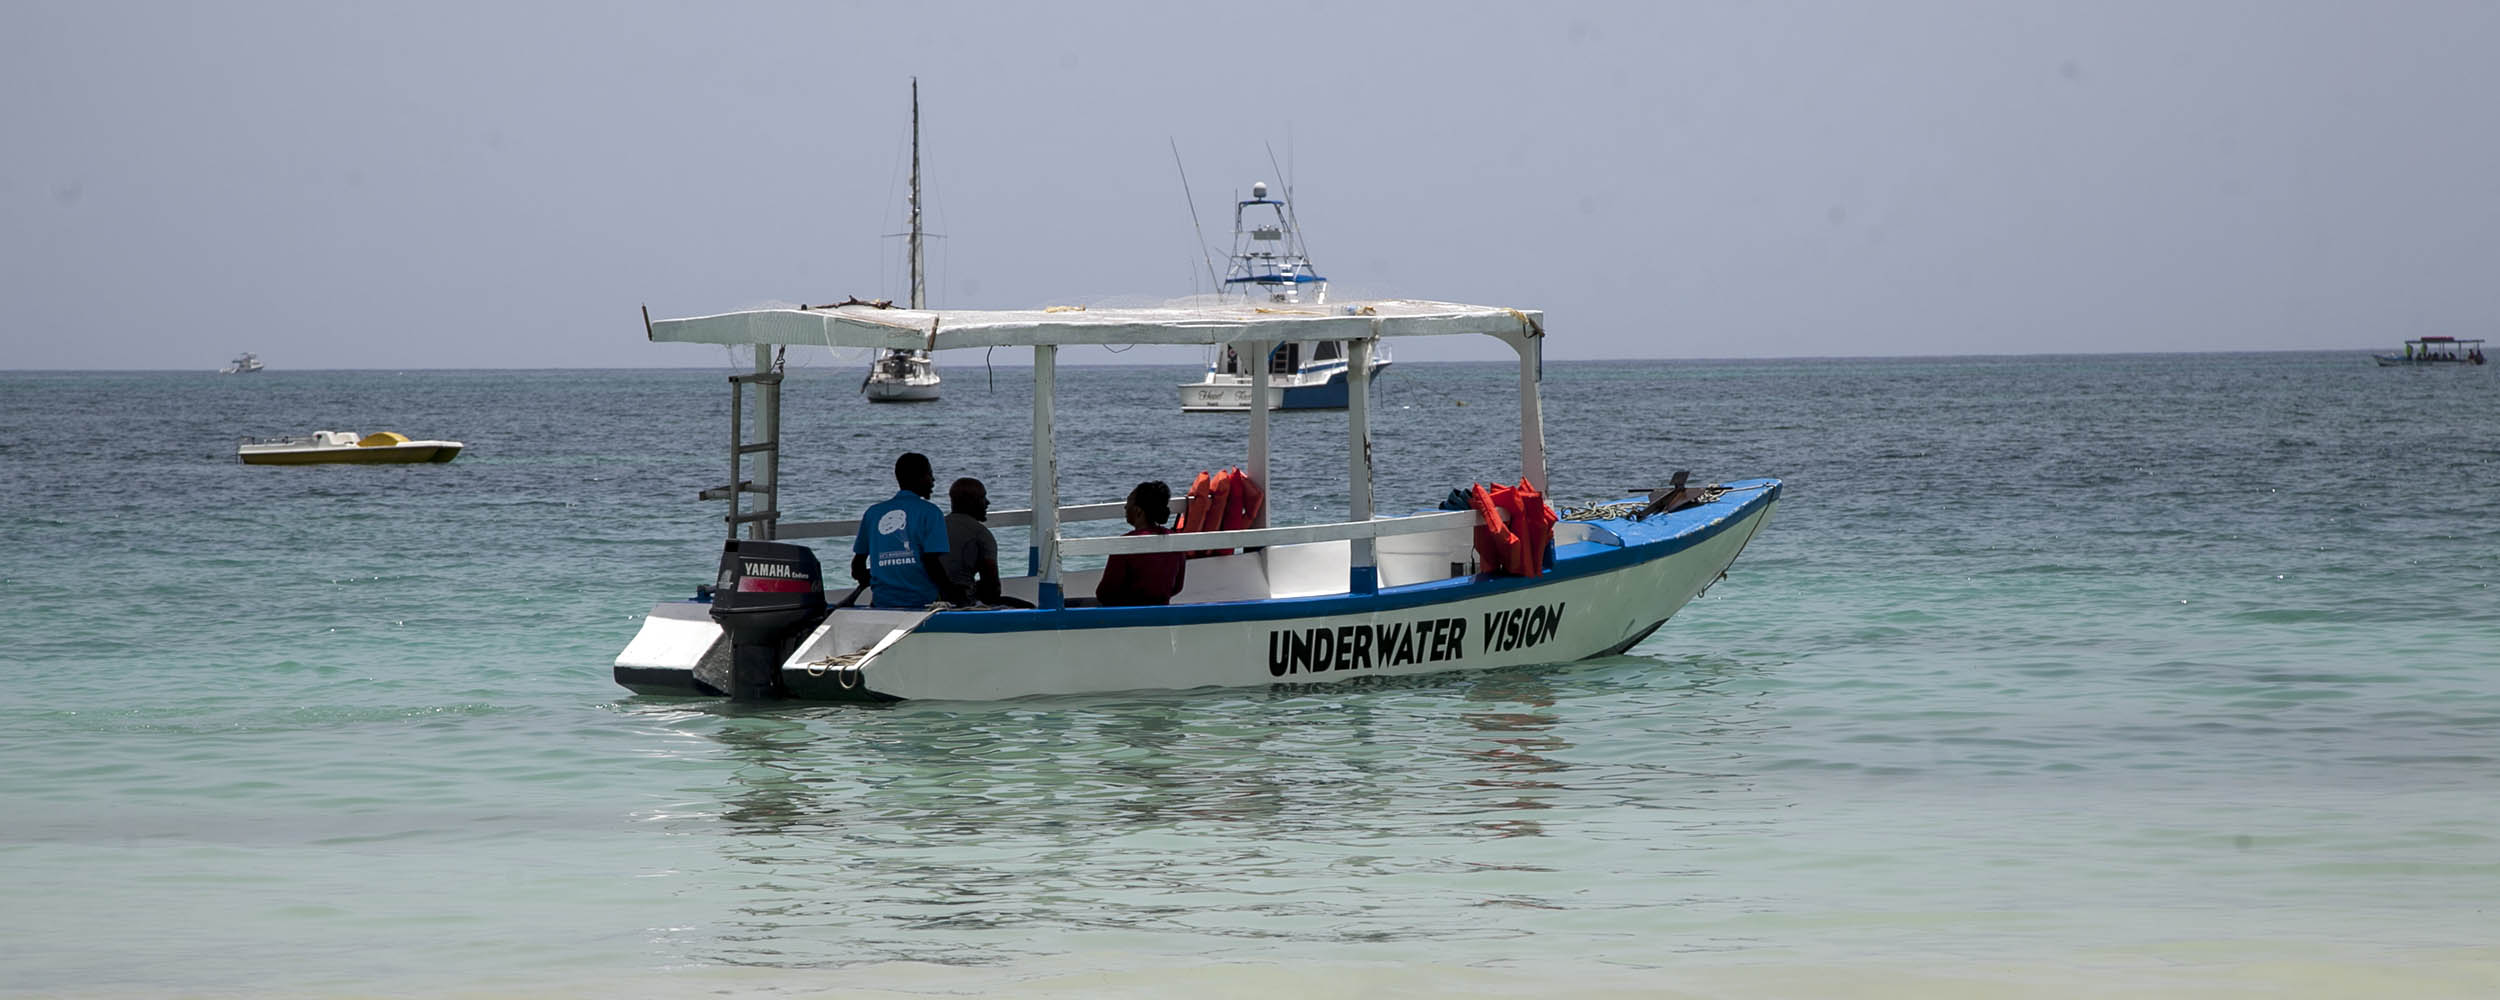 Ray's Water Sports - Glass Bottom Boat - Negril Beach, Negril Jamaica